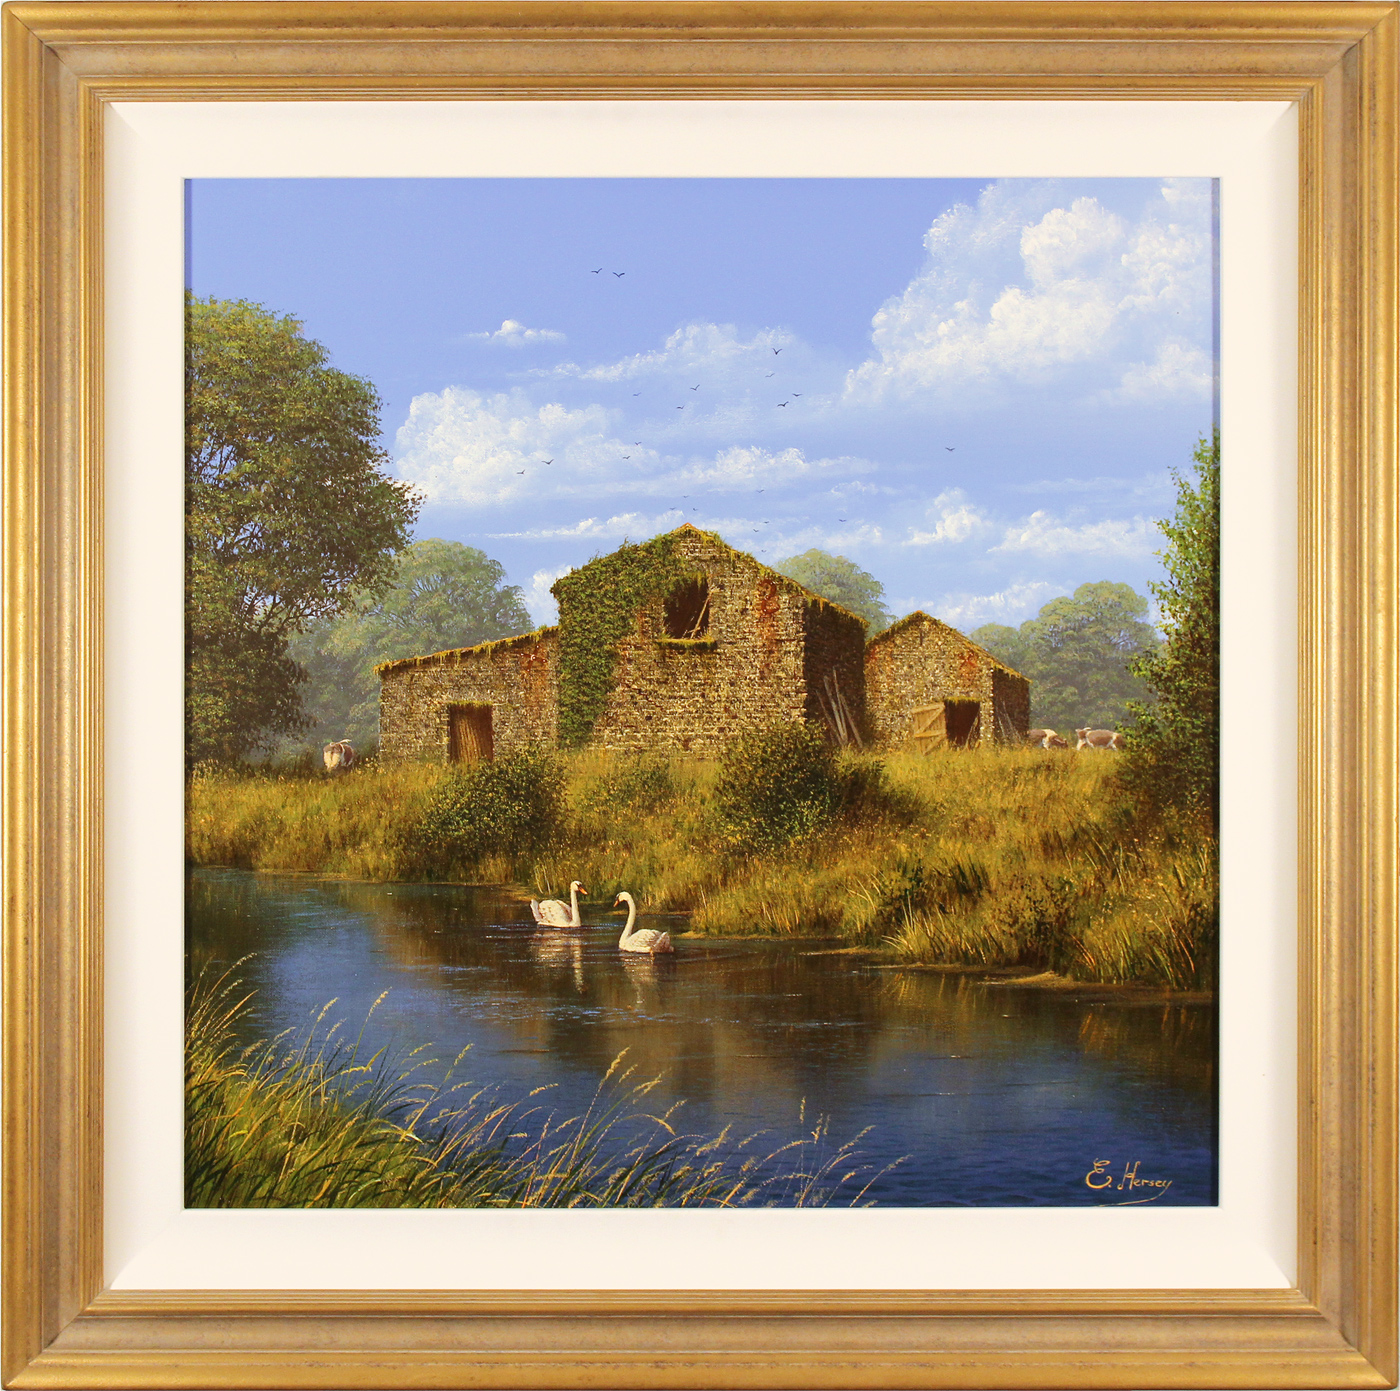 Edward Hersey, Original oil painting on canvas, Summer Graces, click to enlarge